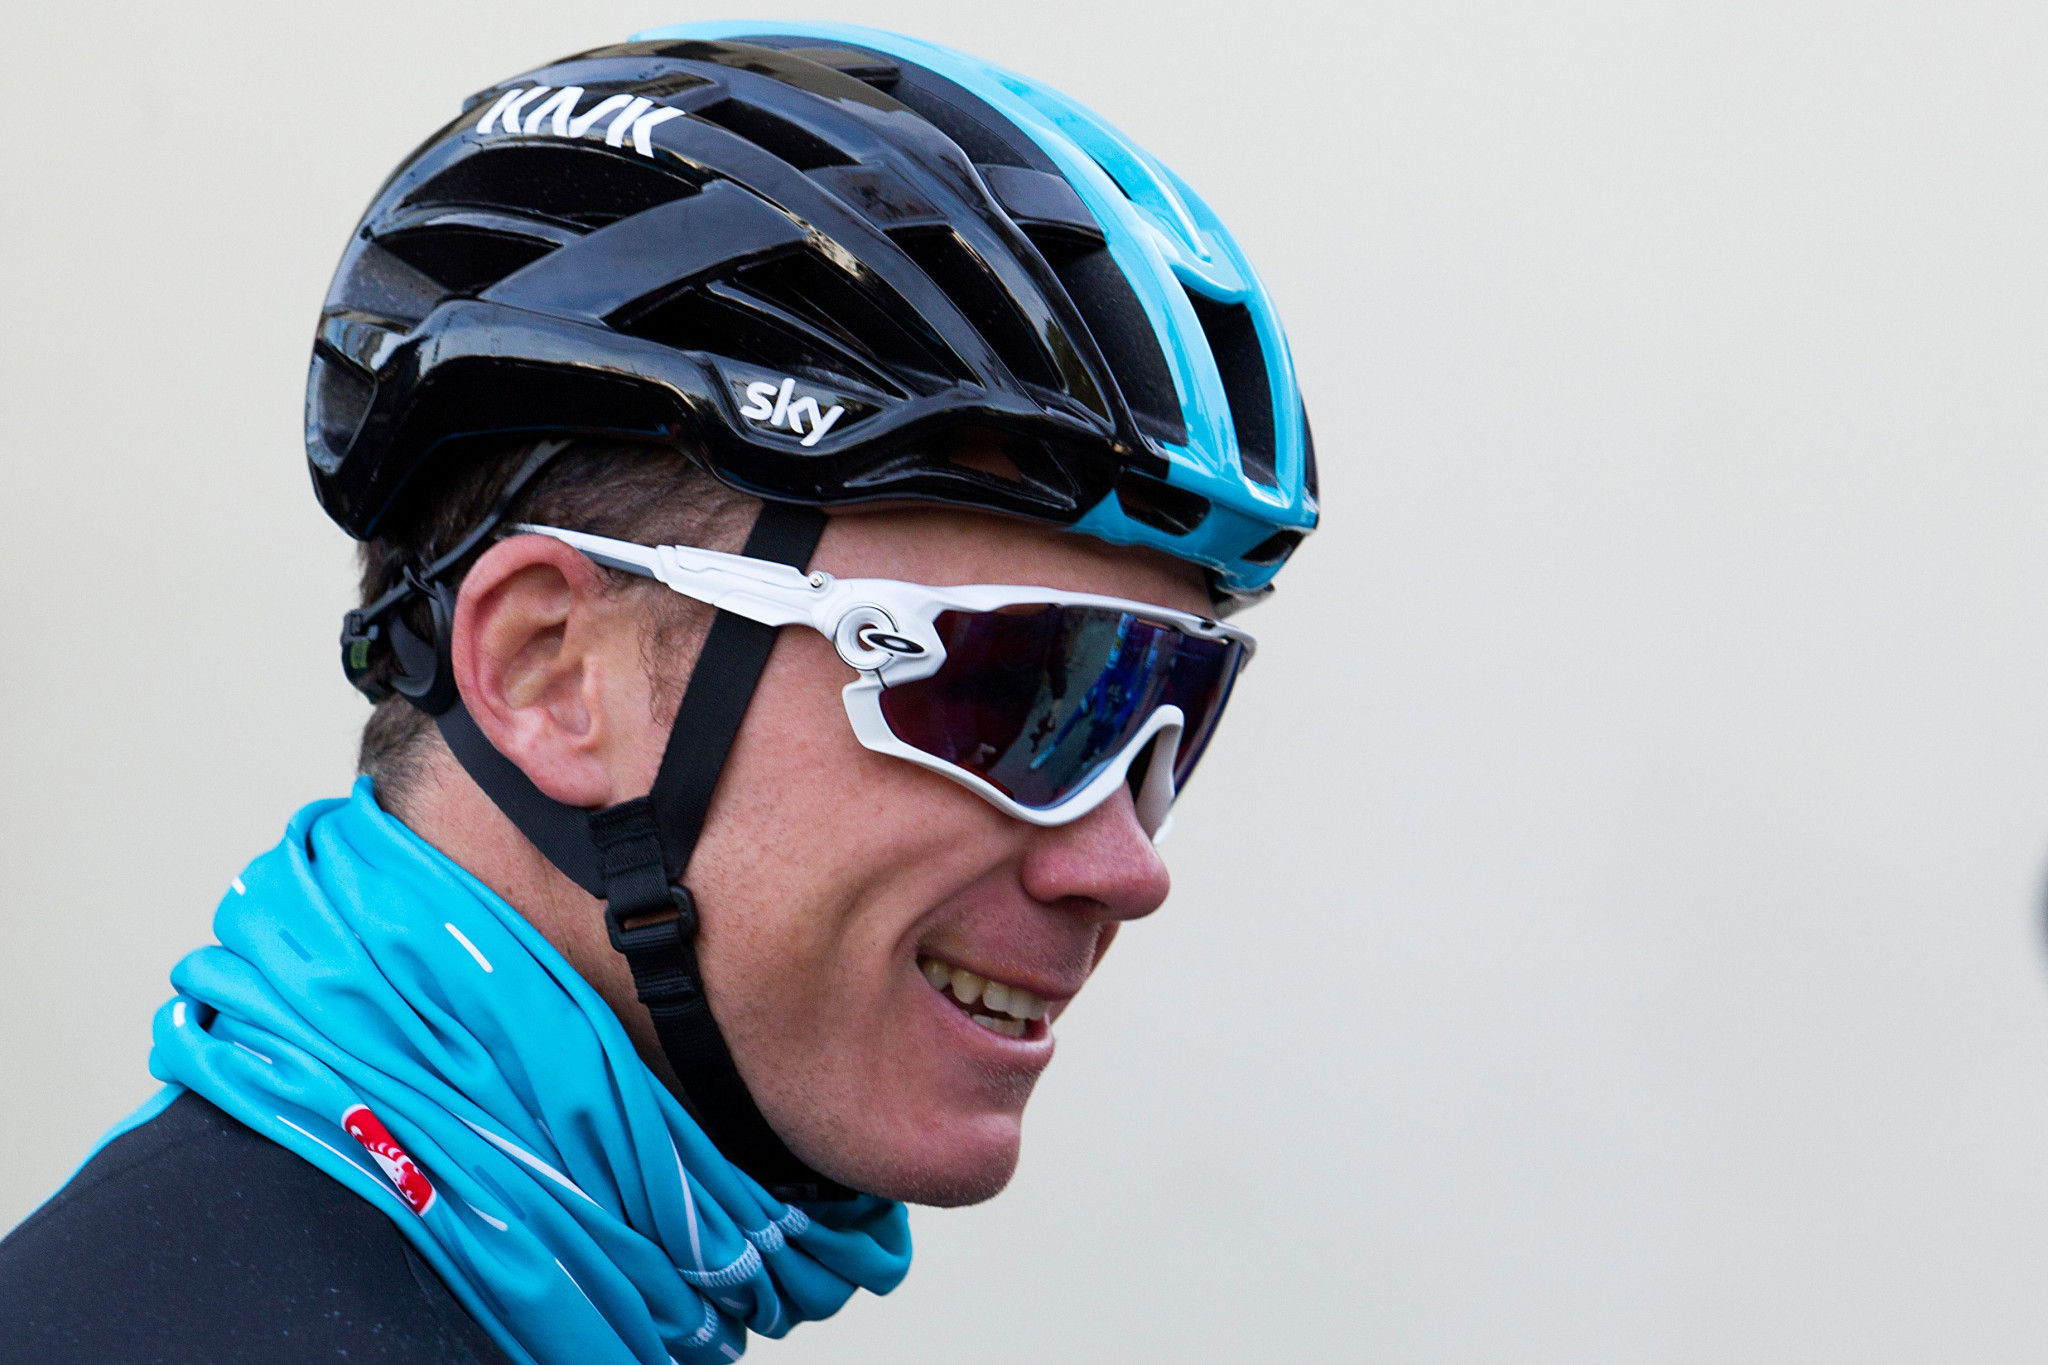 Froome claims UCI President should express concerns to him personally, not through media